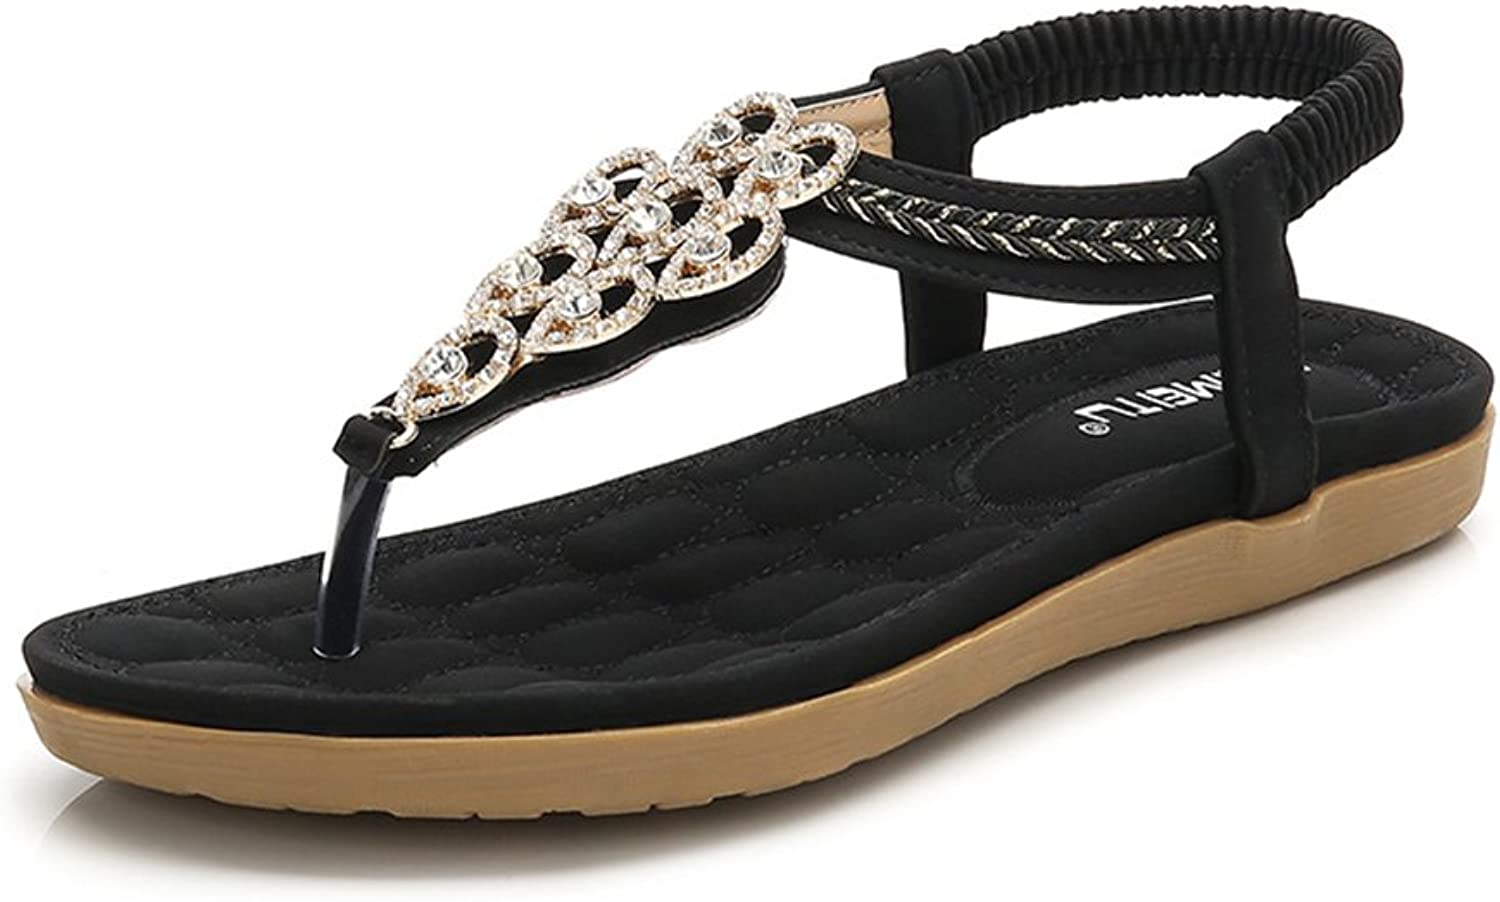 Mobnau Women's Leather Beaded Beach Thong Summer Sandals